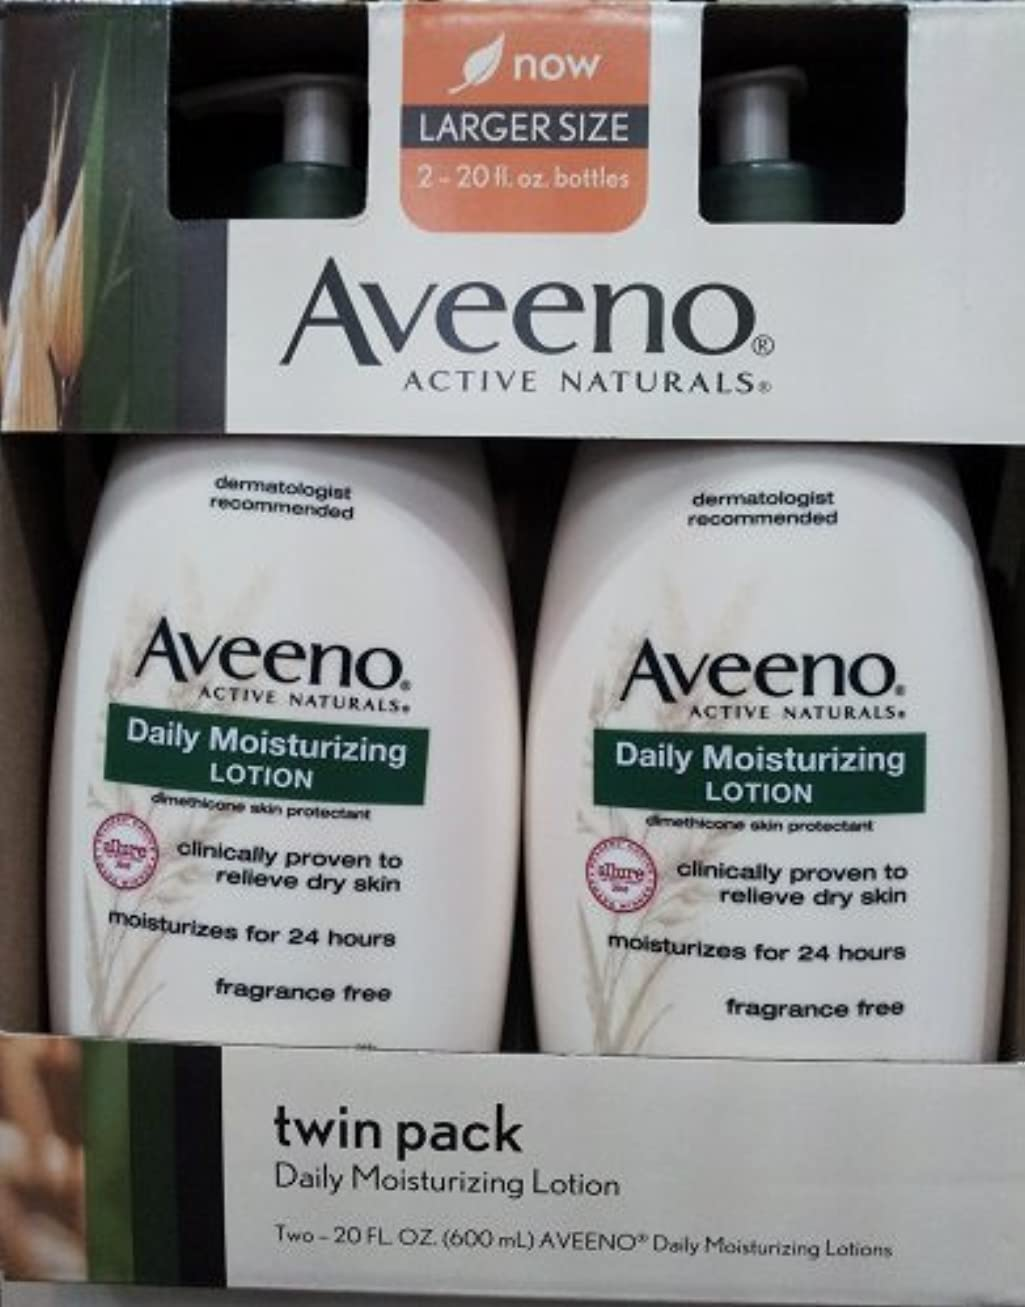 ホーン恐ろしいです足首Aveeno Active Naturals Daily Moisturizing Lotion, NEW 2 pack of 20 FL oz Pump [並行輸入品]